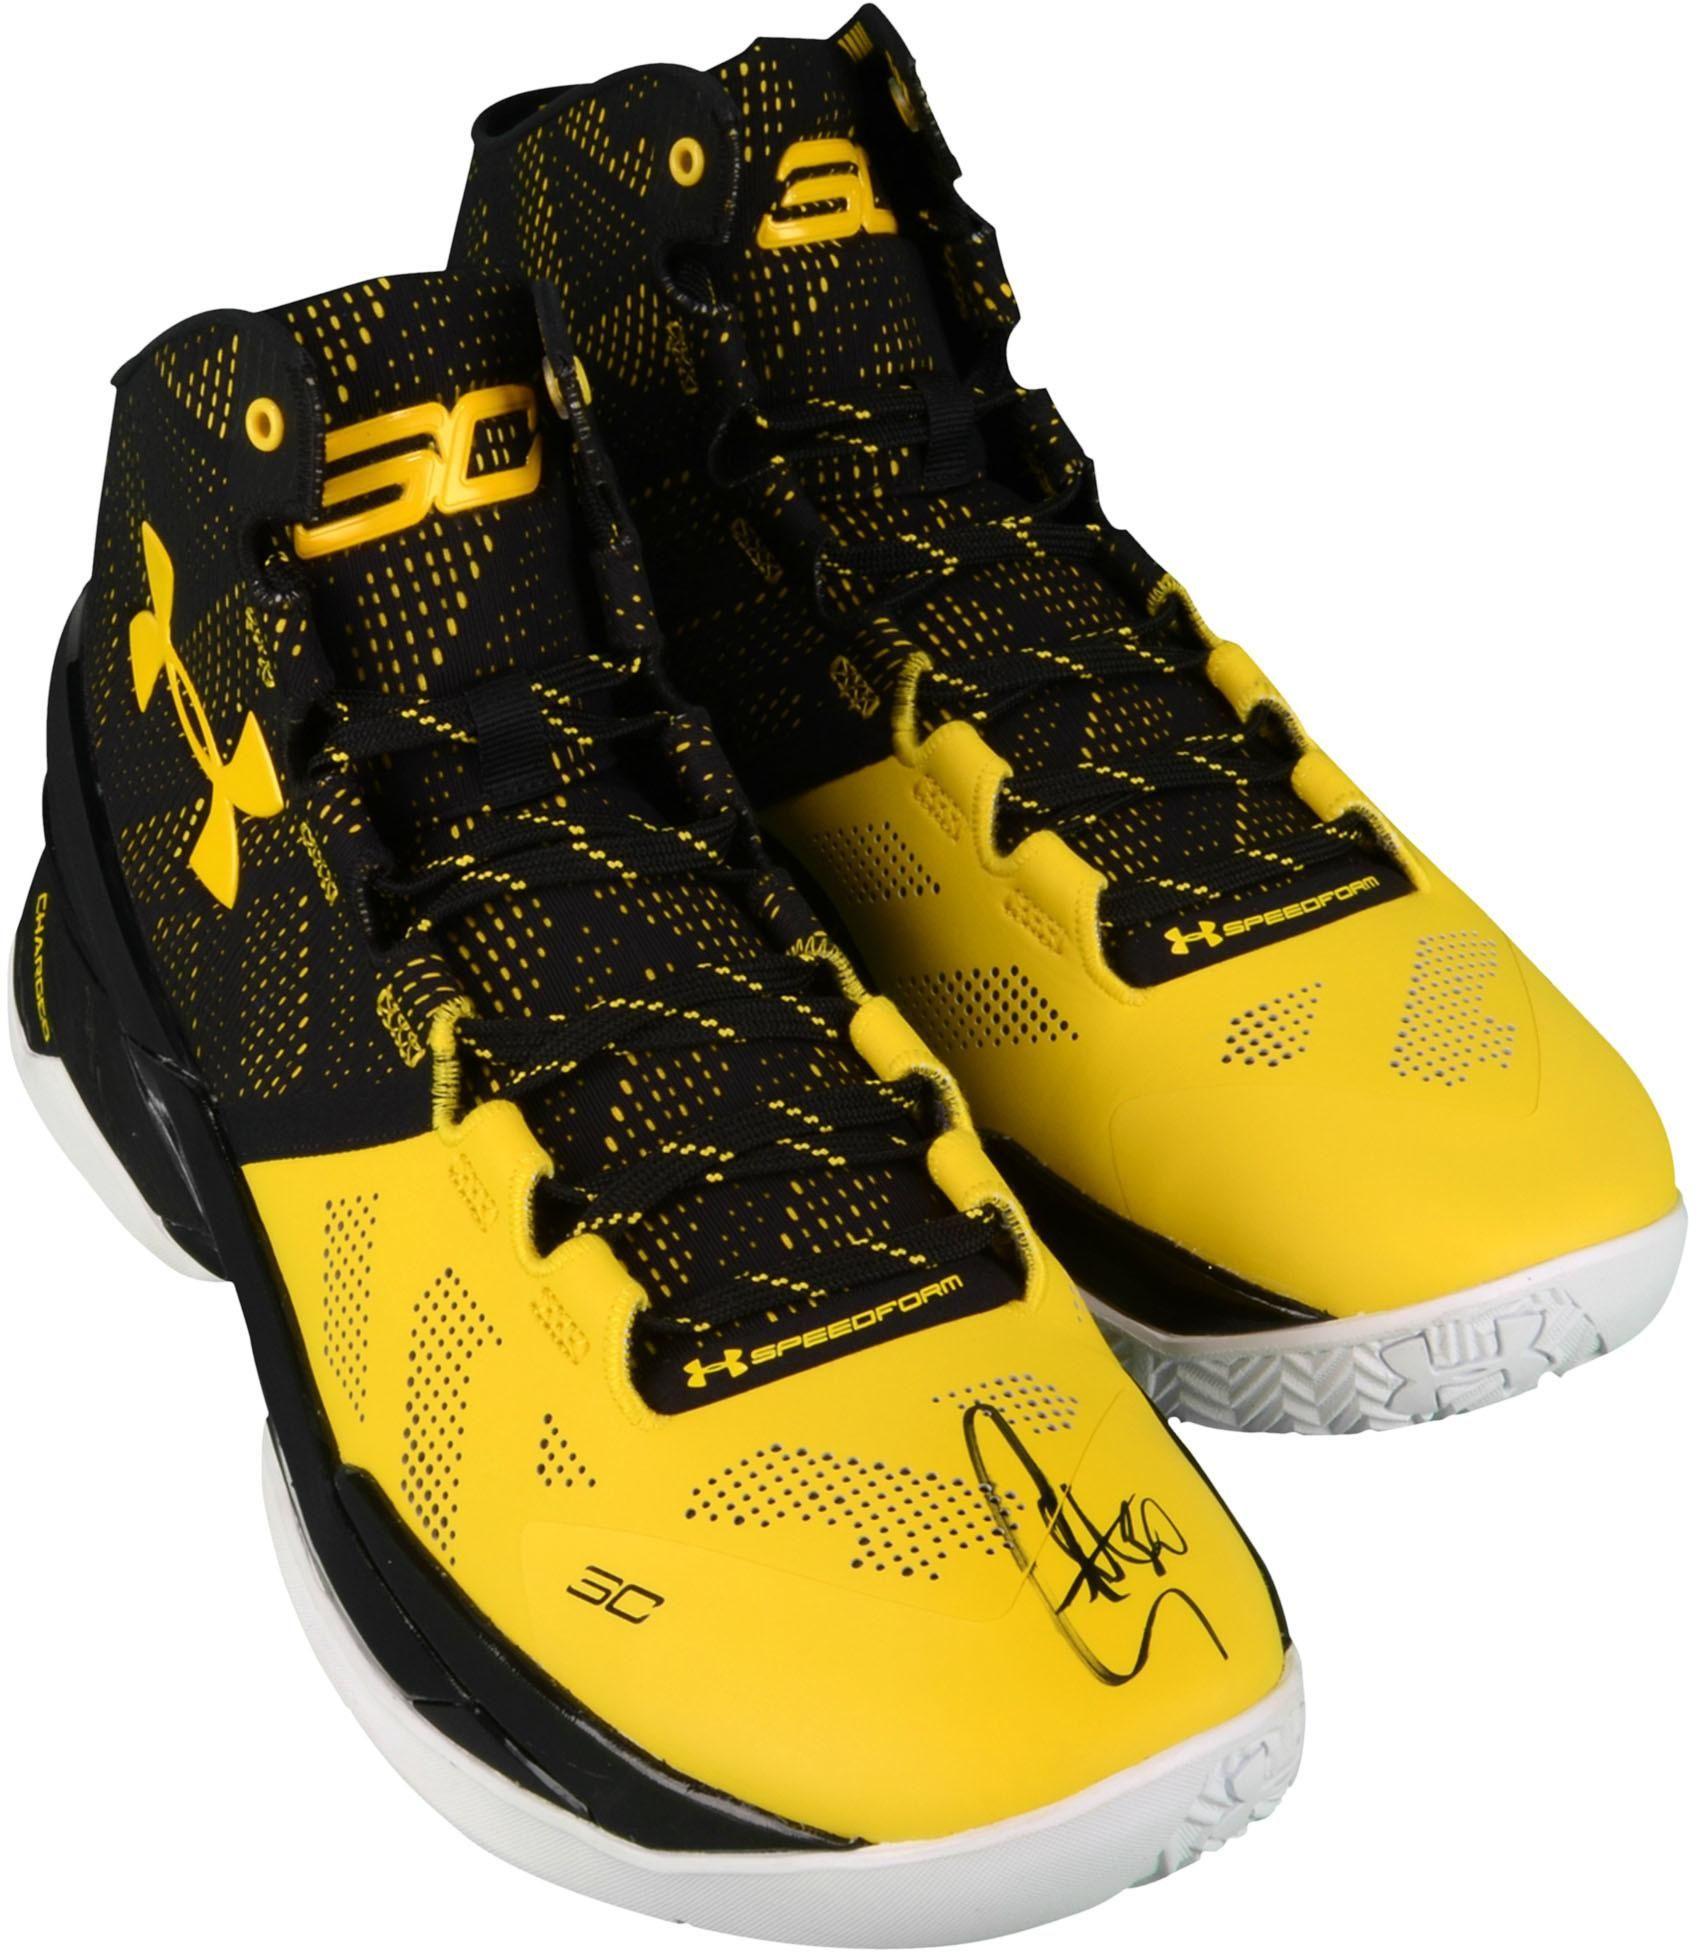 5a23bddcc4e9 Stephen Curry Golden State Warriors Autographed Curry 2 Black and Yellow  Shoes